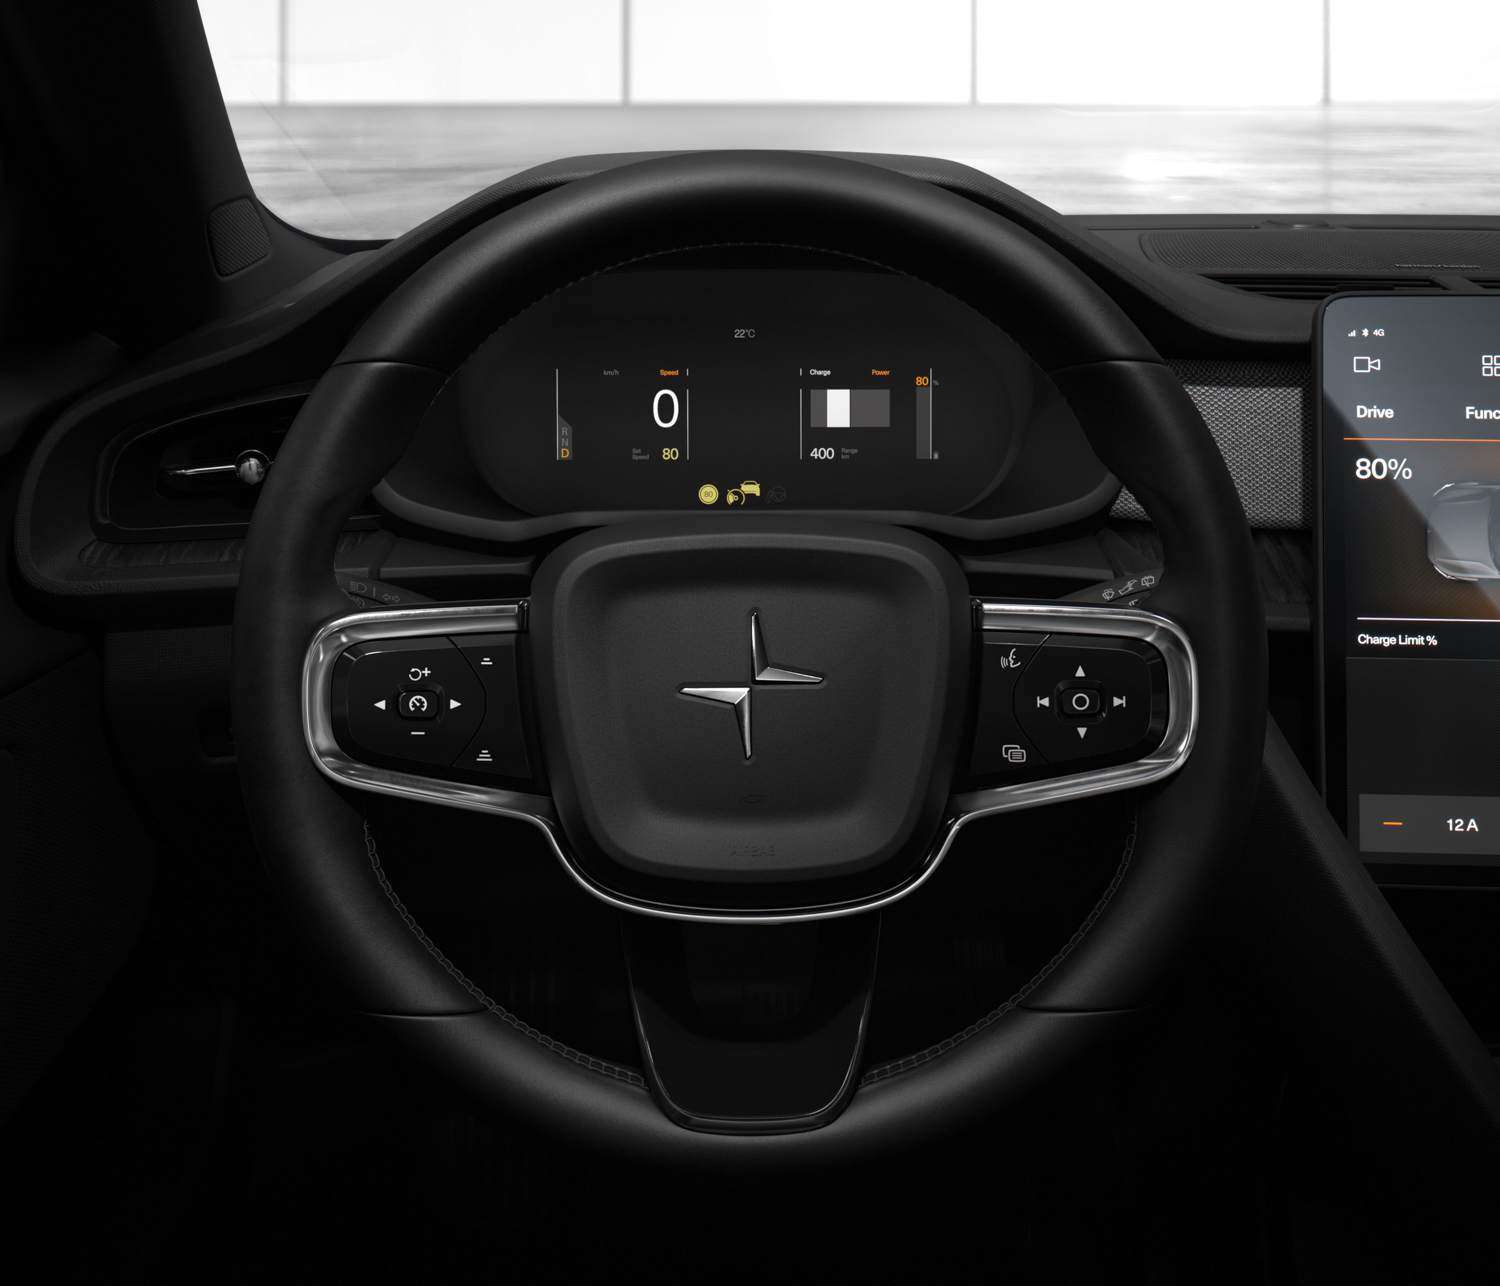 Polestar 2 steering wheel and gauges